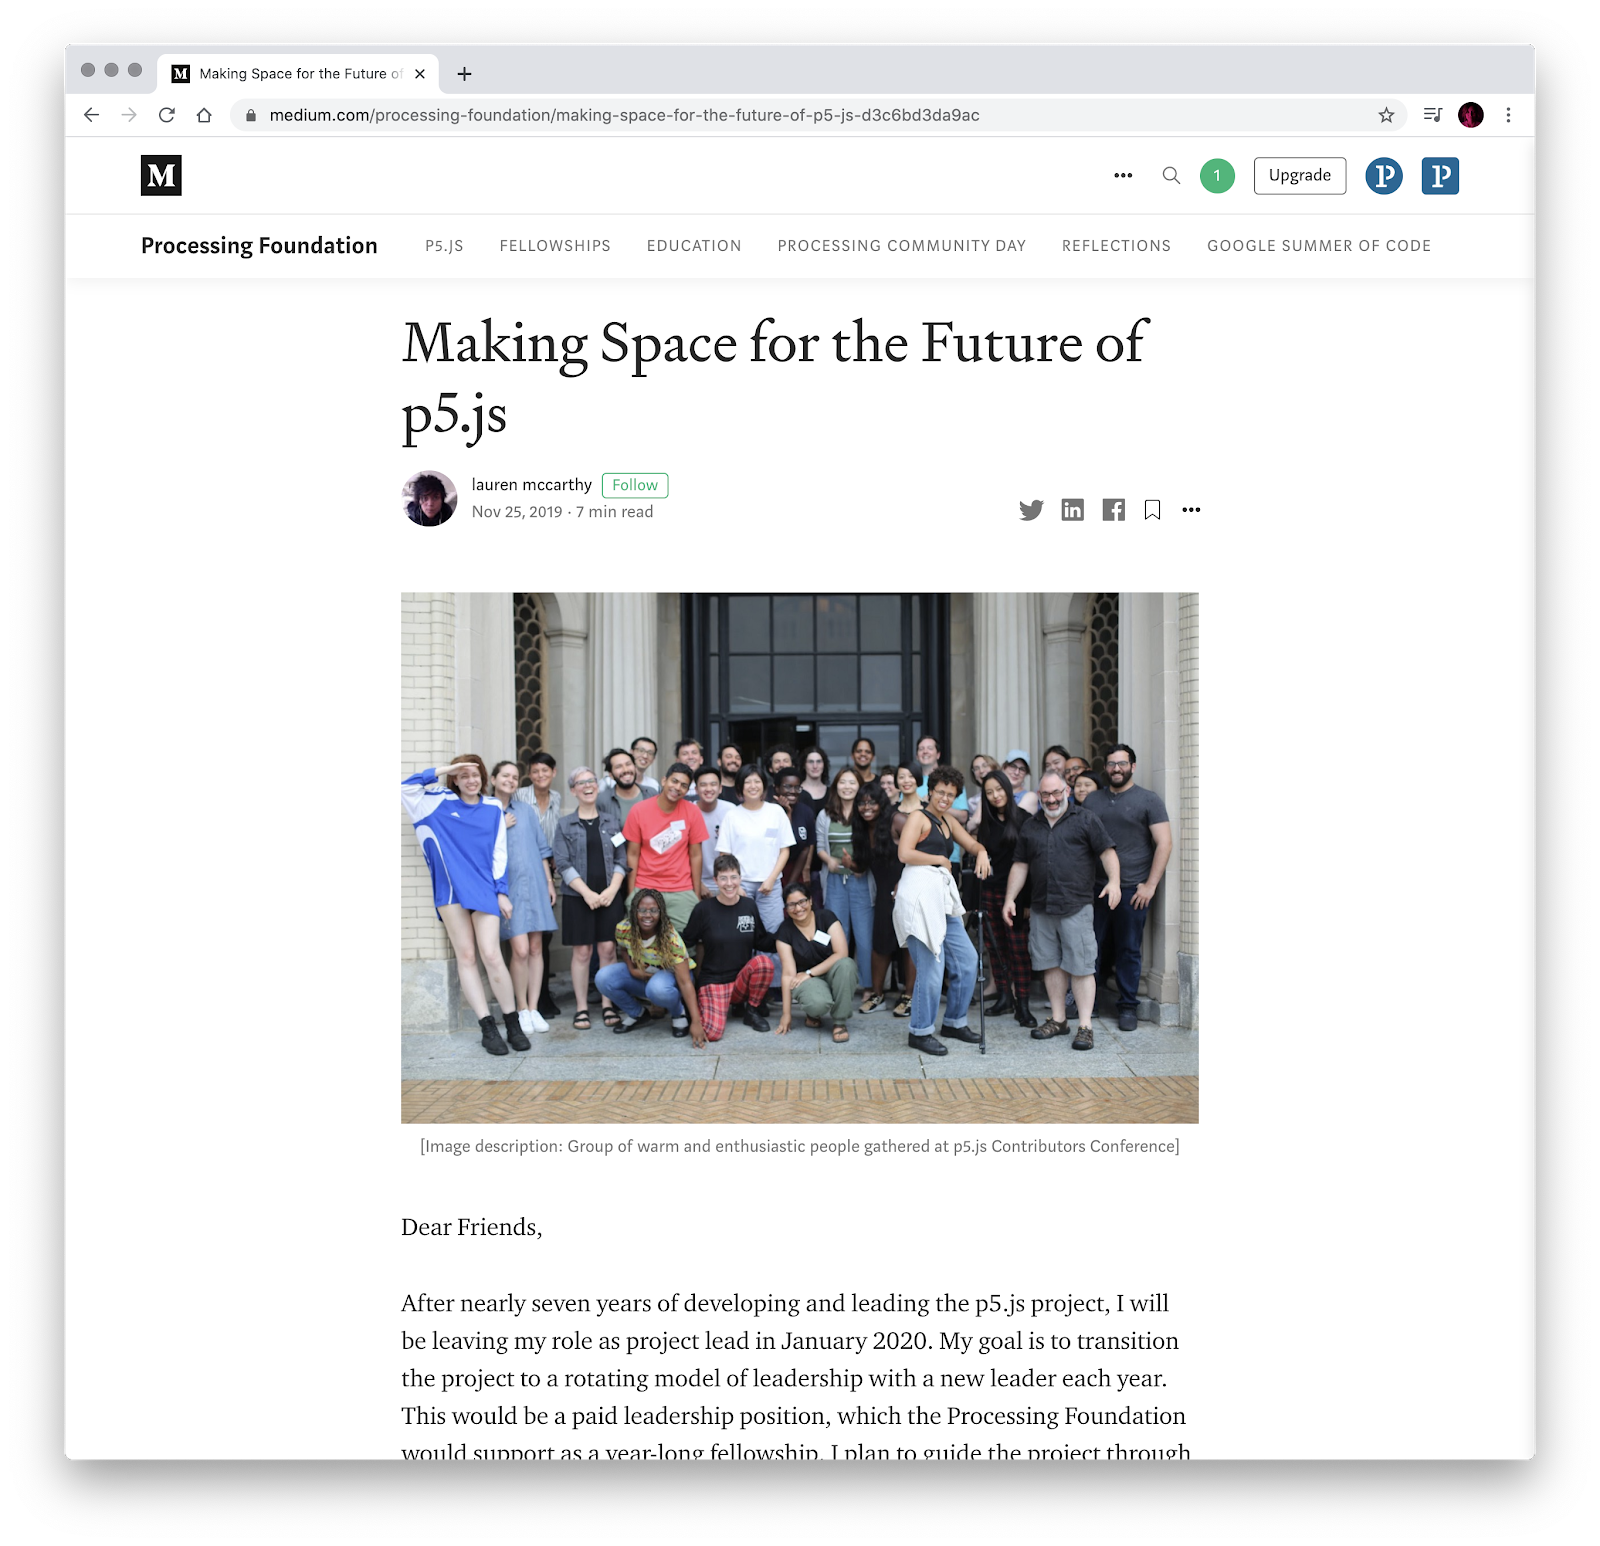 Screenshot of the medium article, with a group photo of at least two dozen people smiling for the camera.